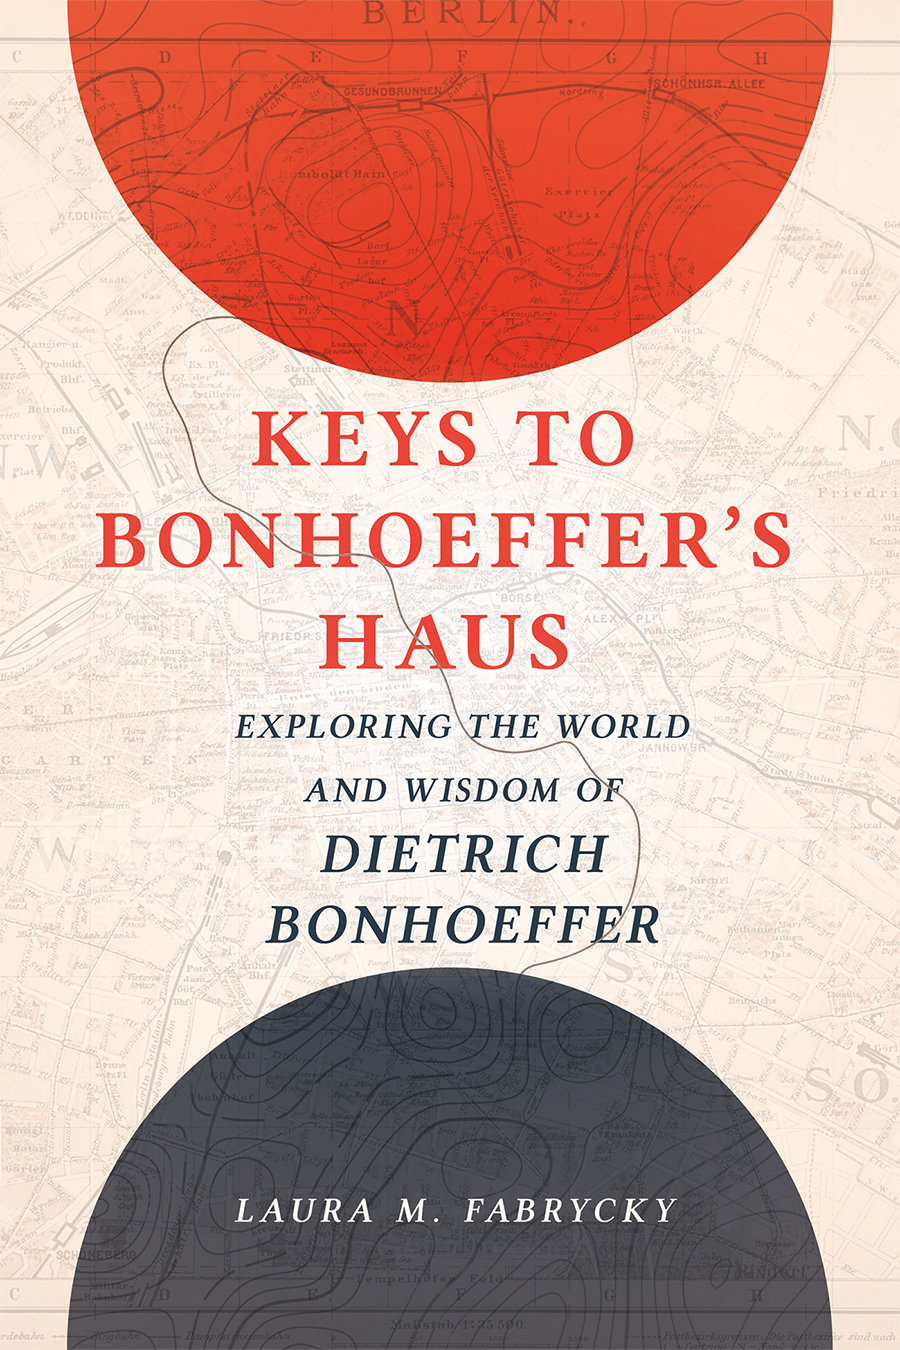 Keys to Bonhoeffer's Haus: Exploring the World and Wisdom of Dietrich Bonhoeffer